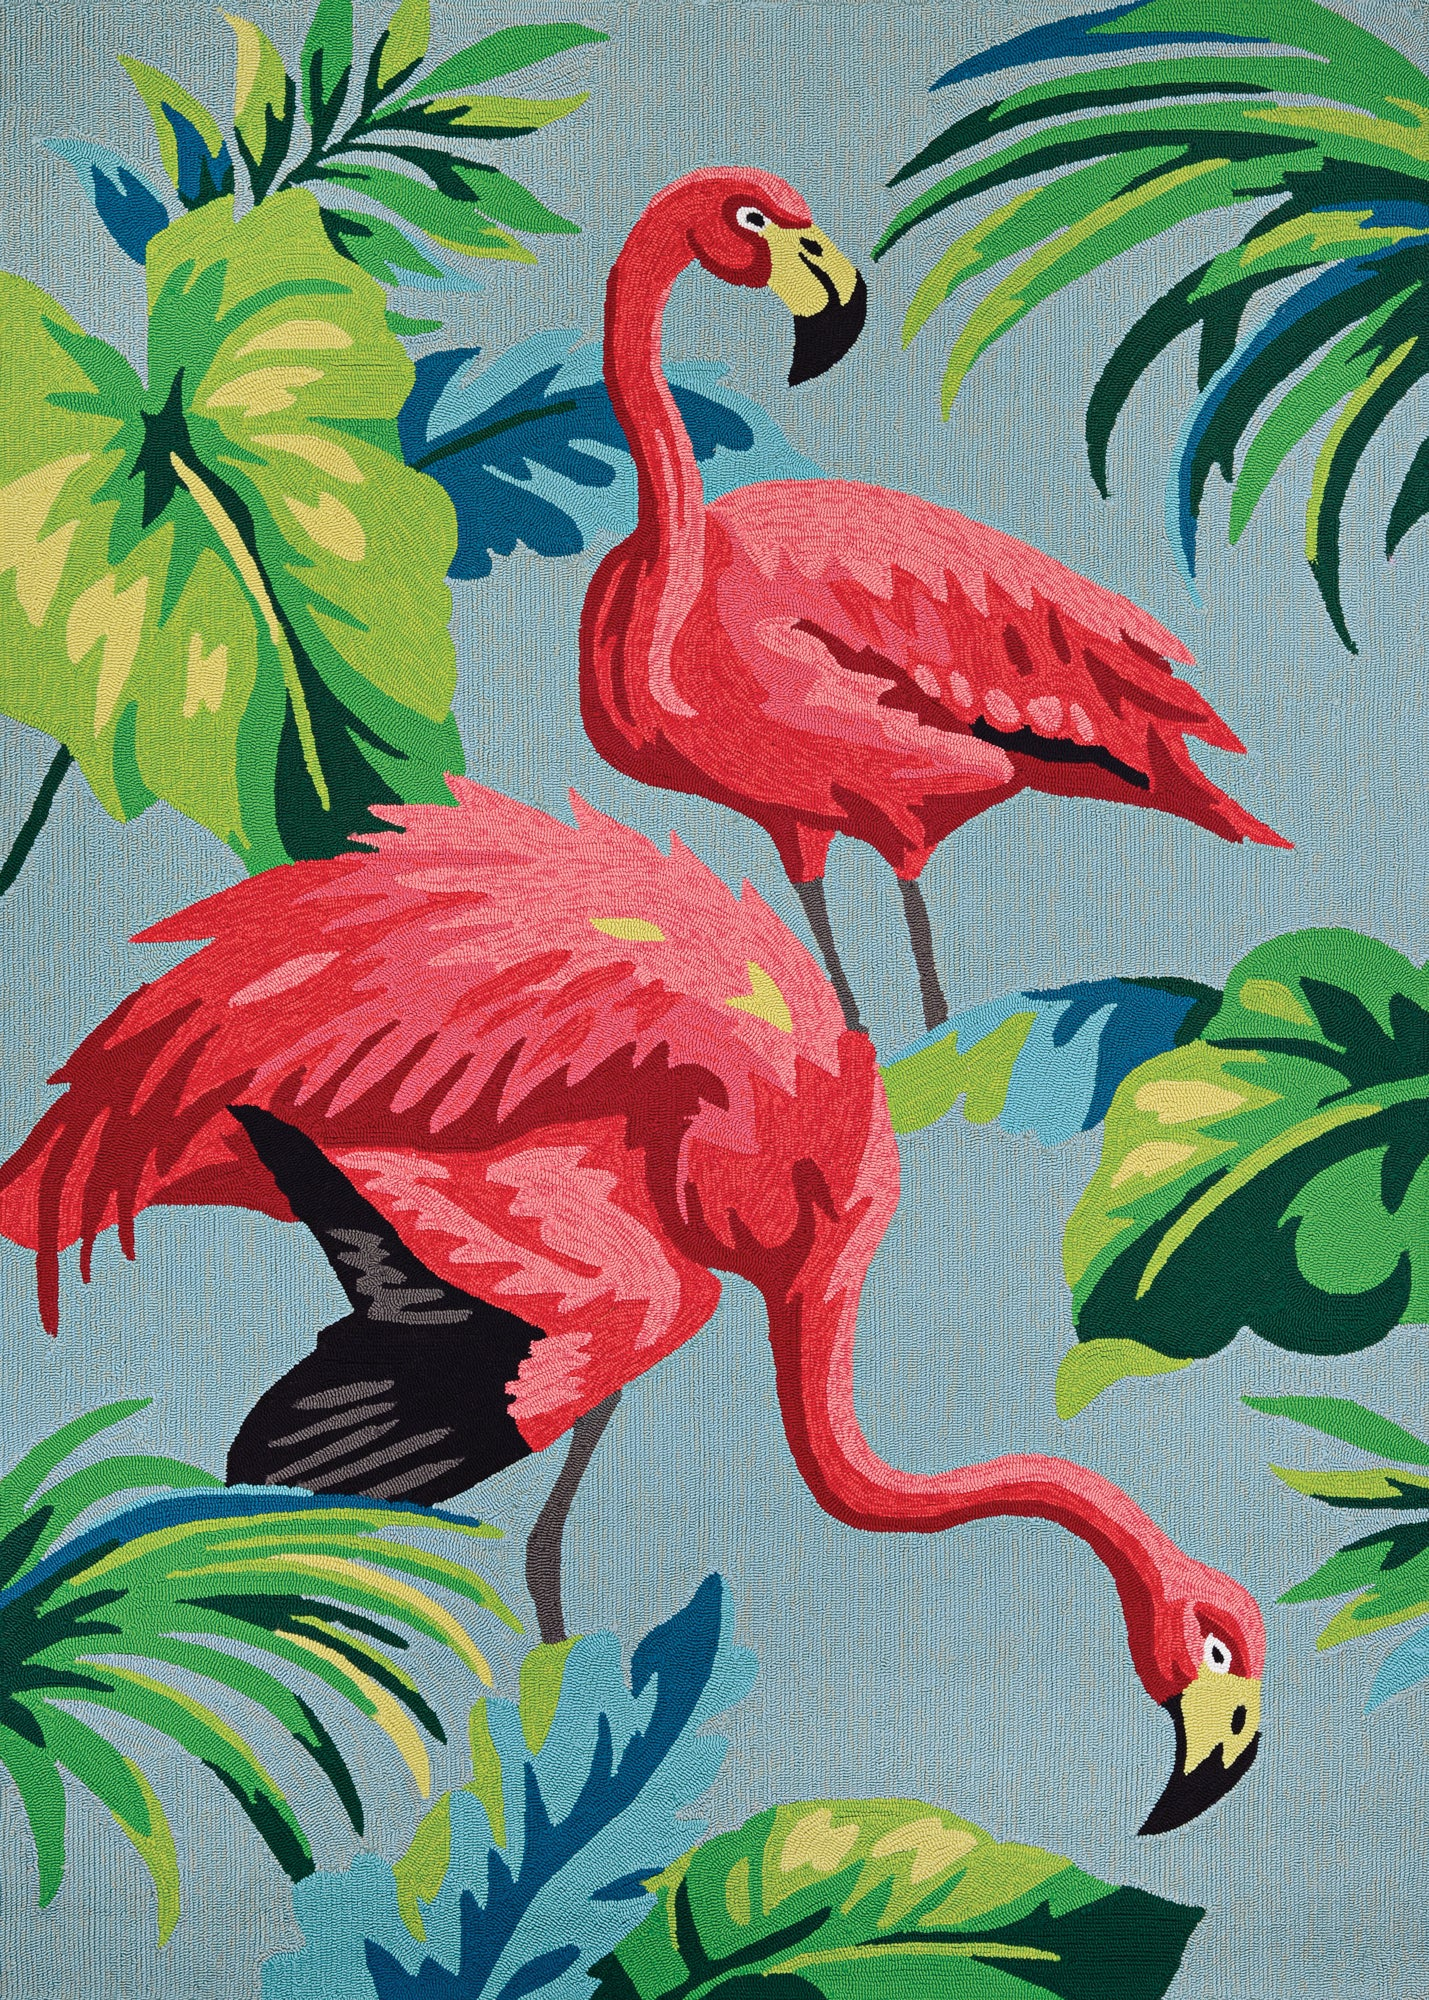 Couristan Covington Flamingos Multi Area Rug main image